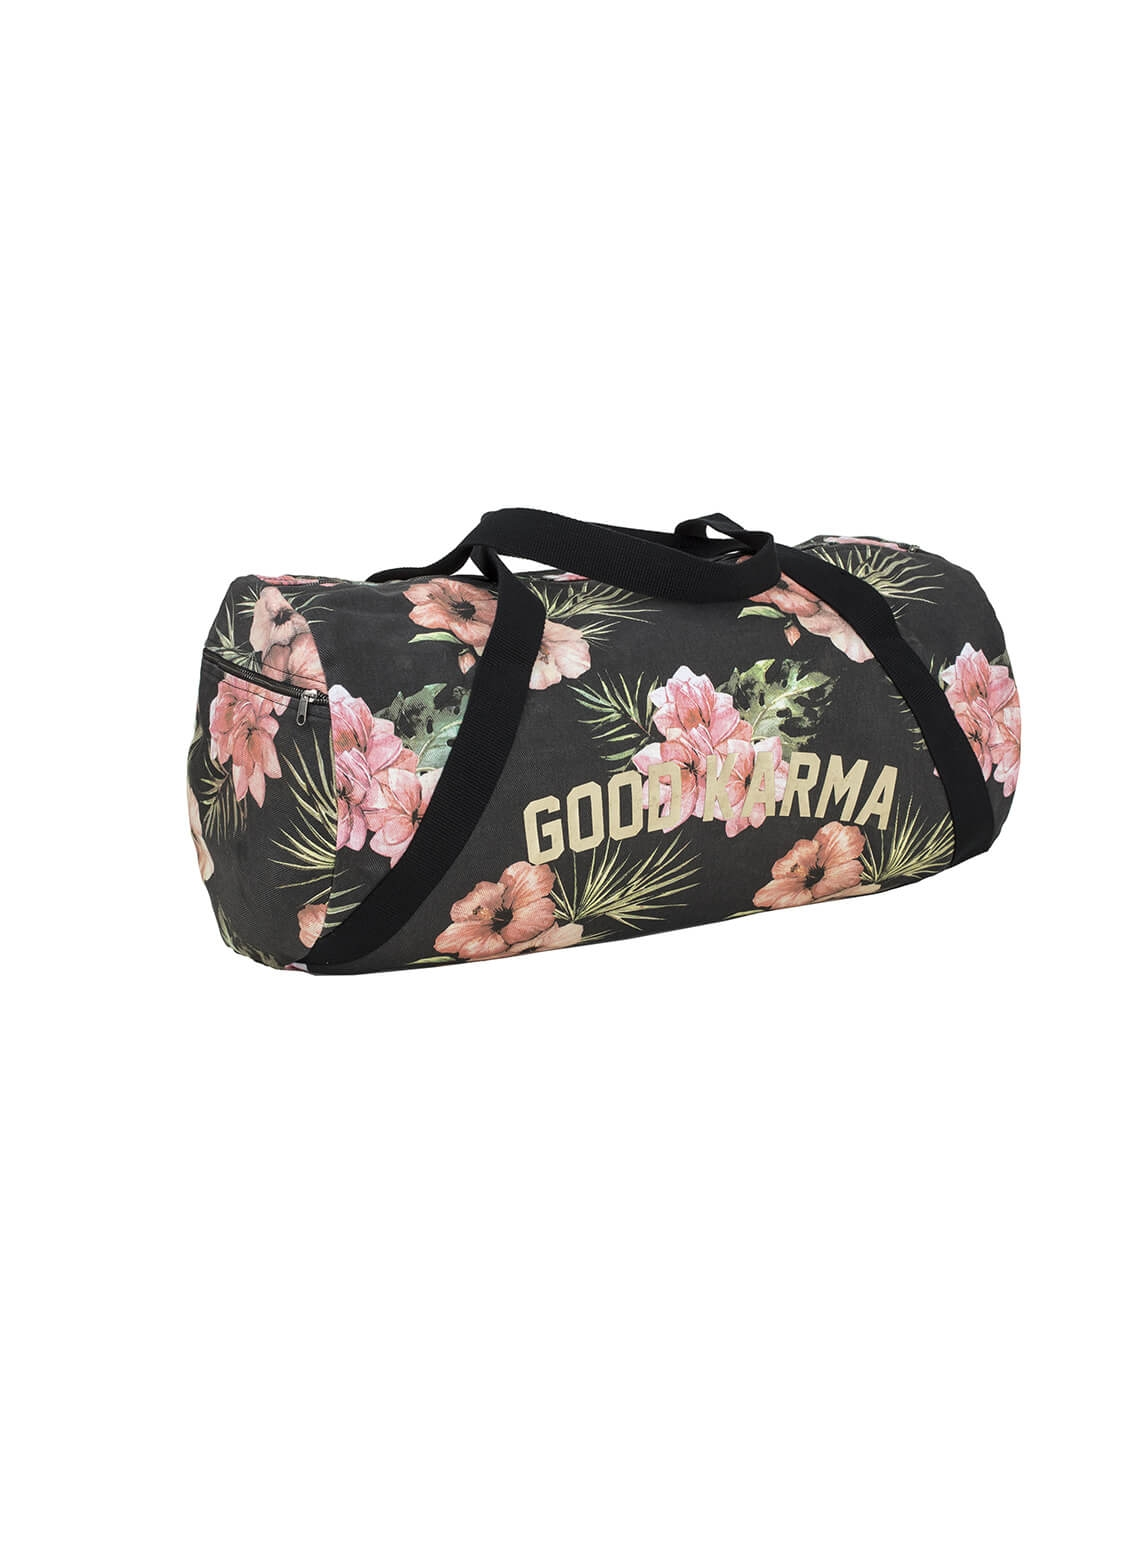 Spiritual Gangster Good karma duffle bag